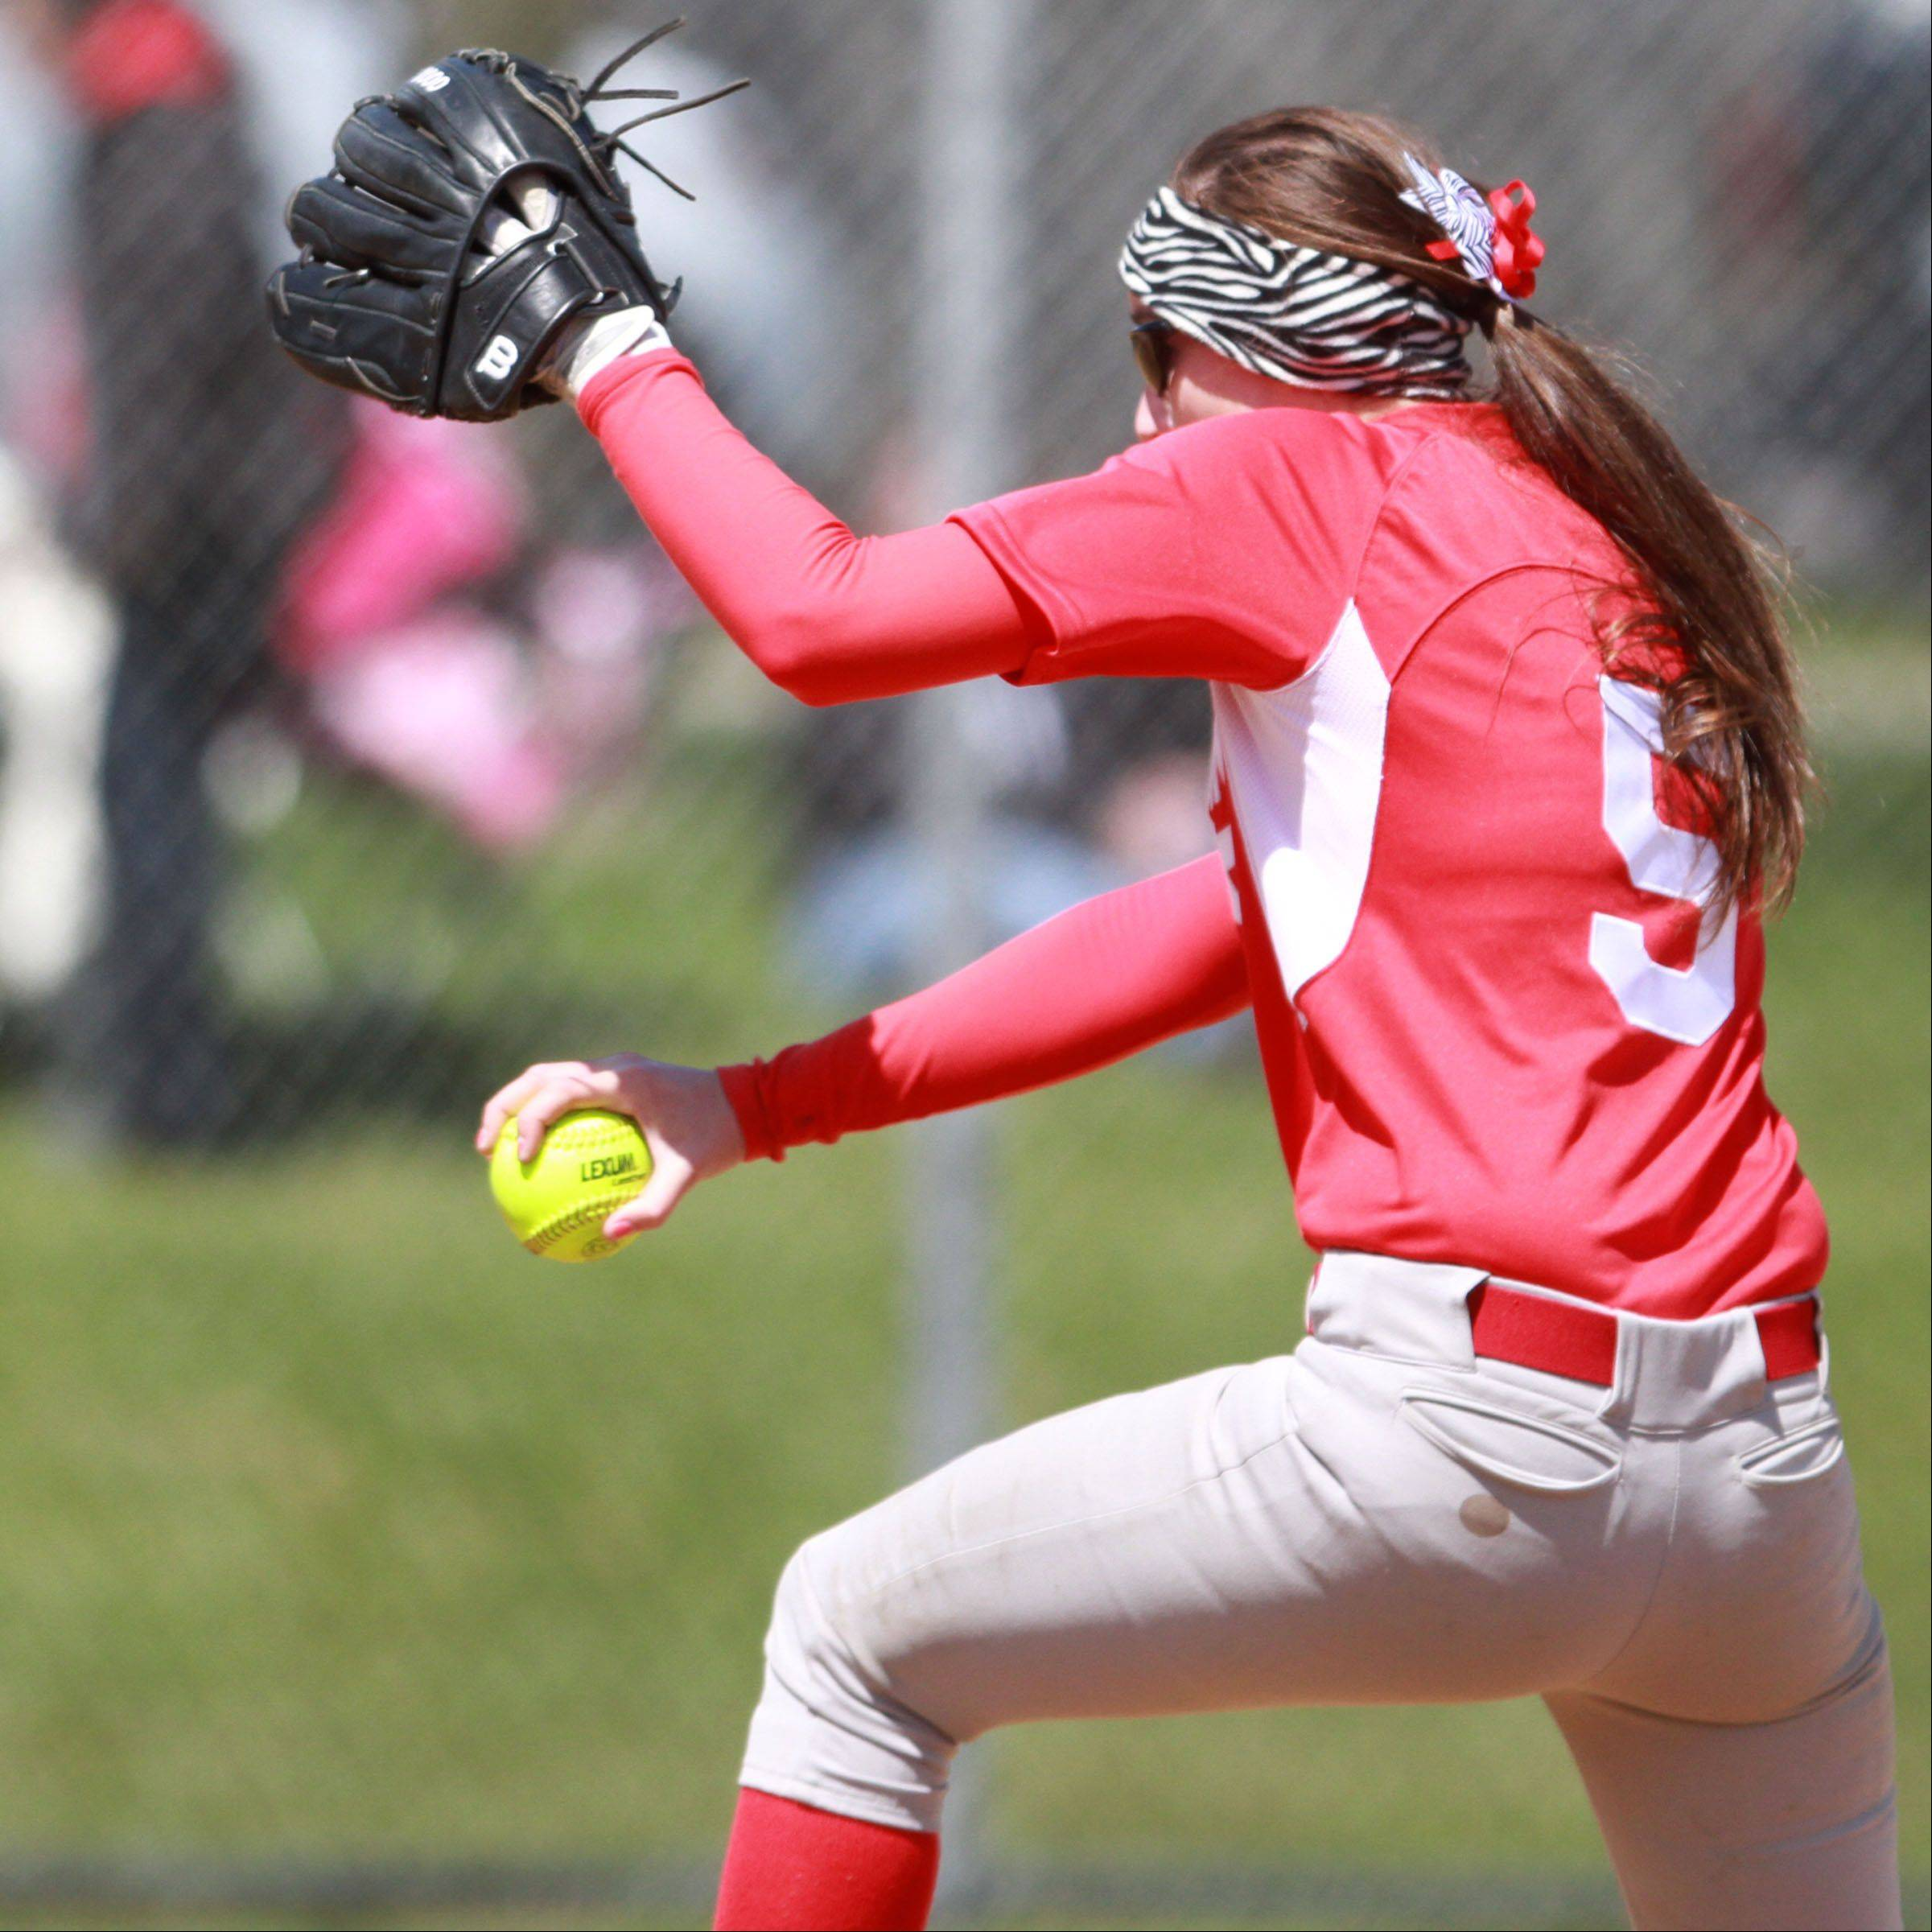 Mundelein's Erin Kennelly pitches against Johnsburg's at Mundelein on Saturday. 3.